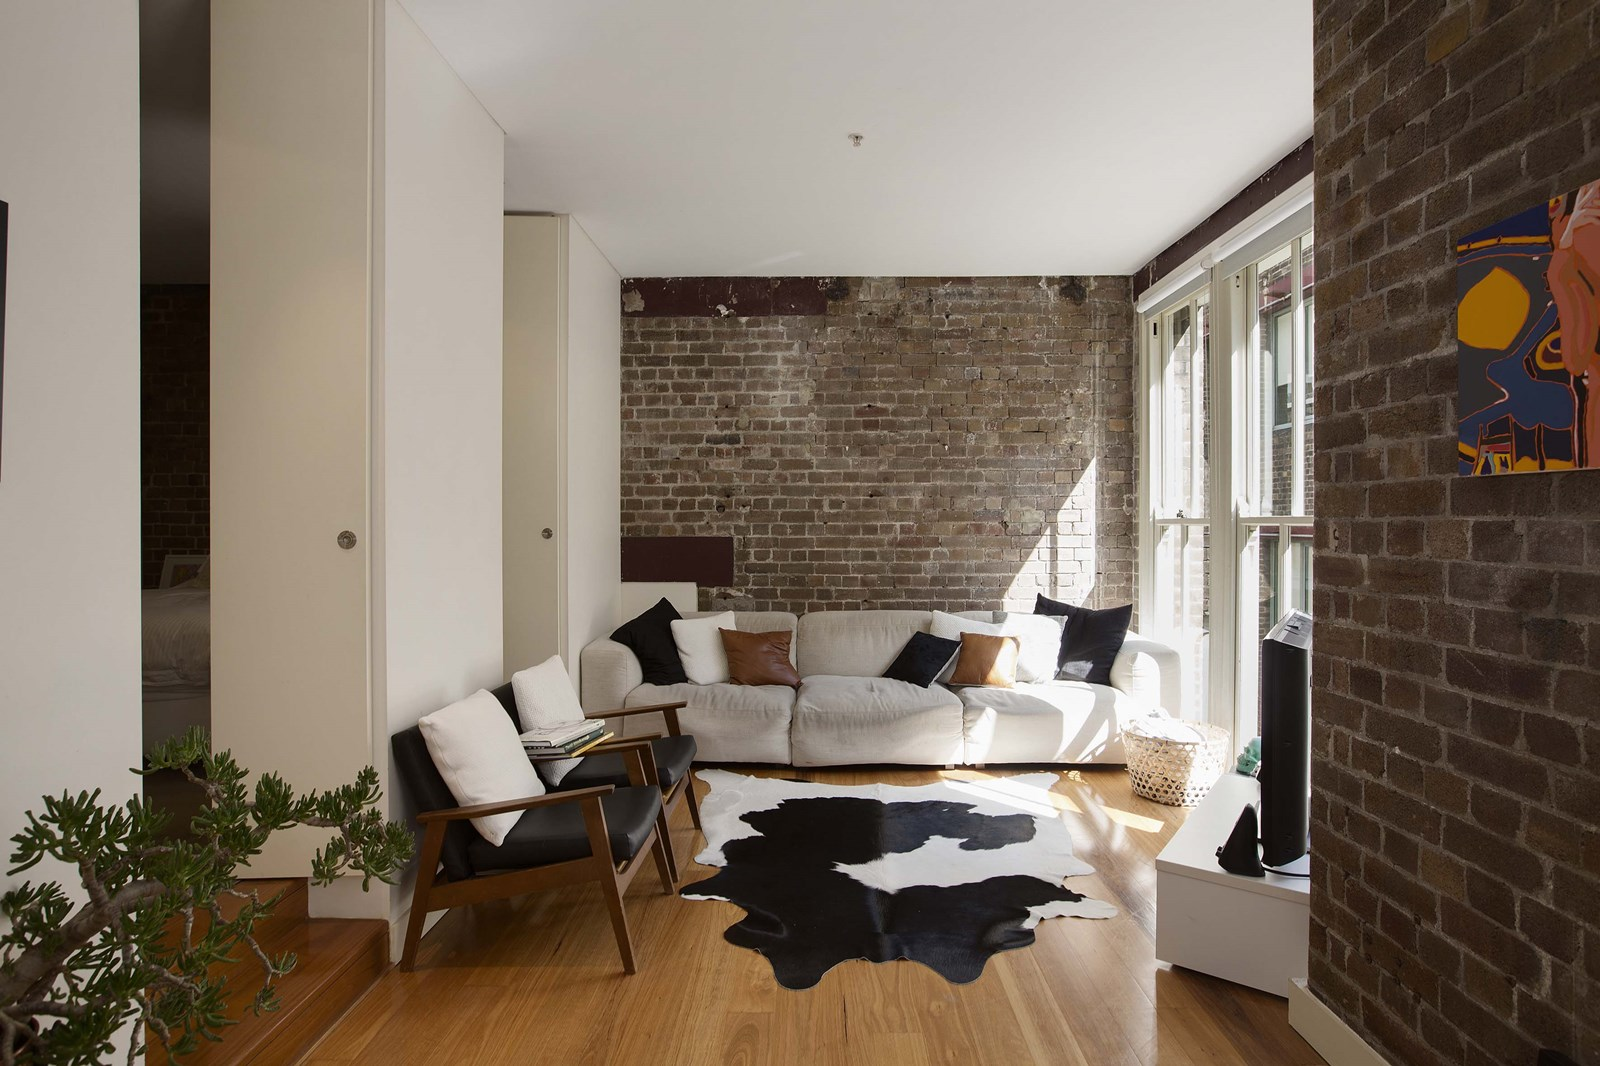 How To Make A Warehouse Homely